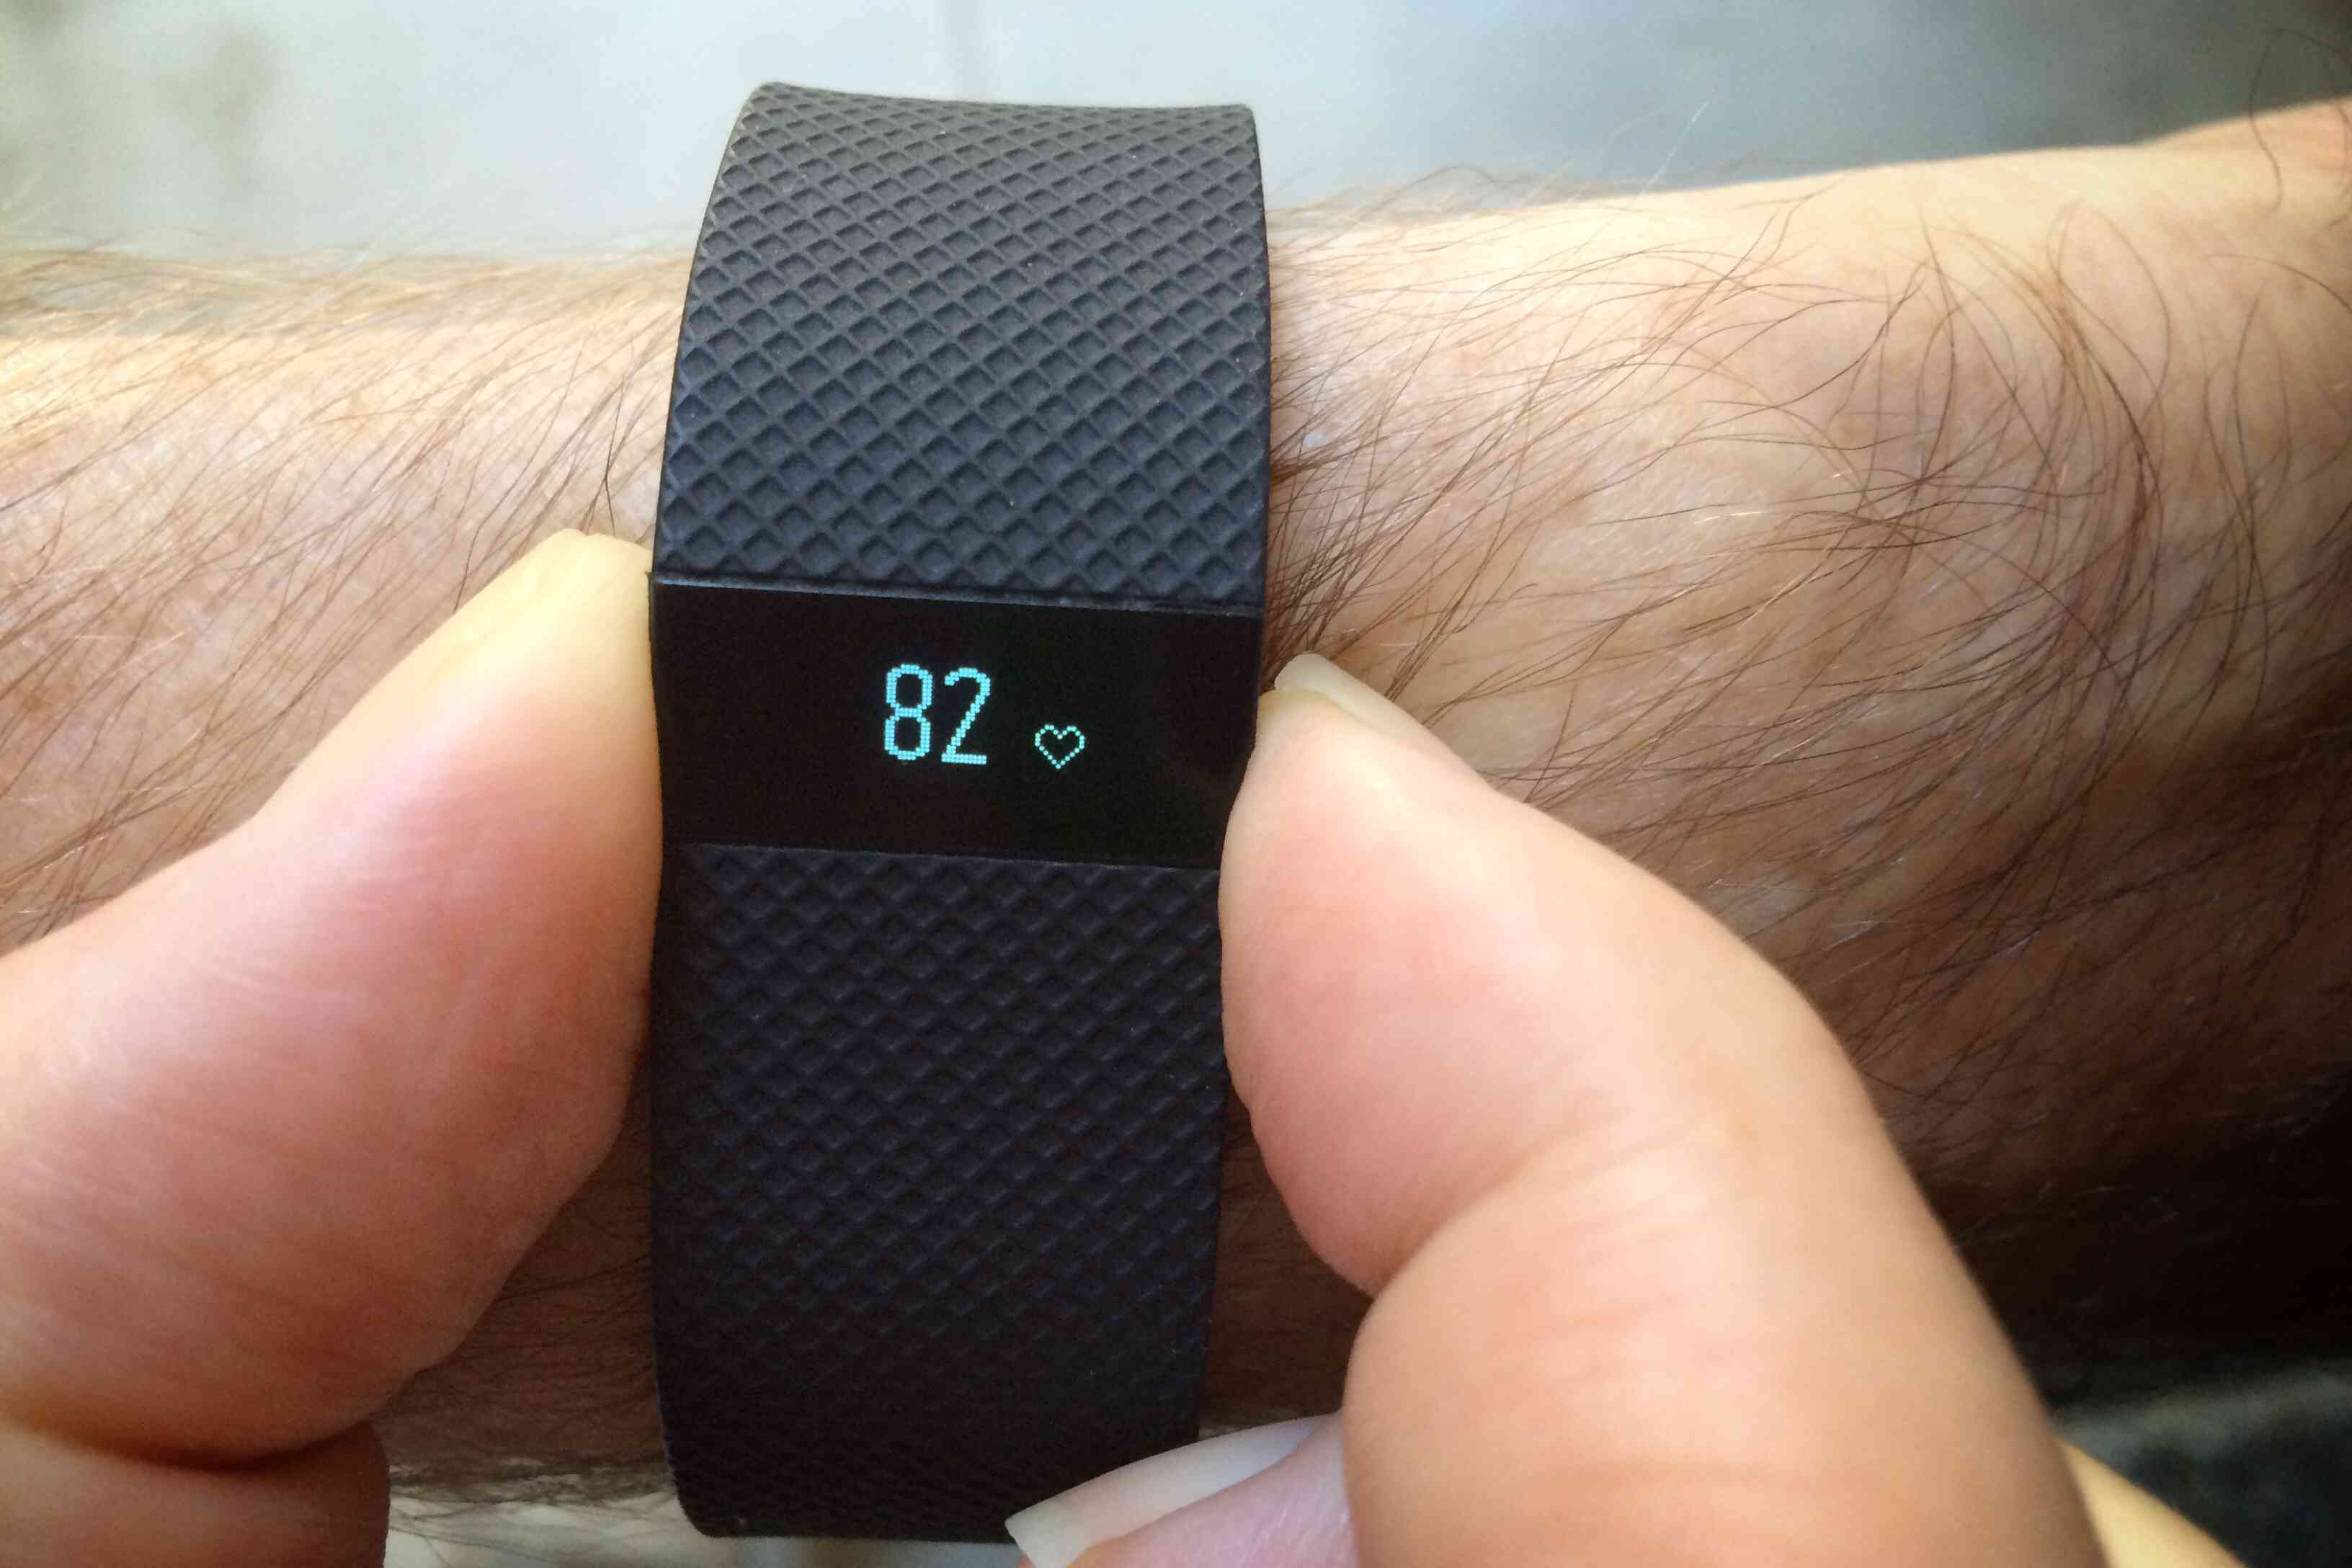 A Fitbity displaying heart rate on a wrist.